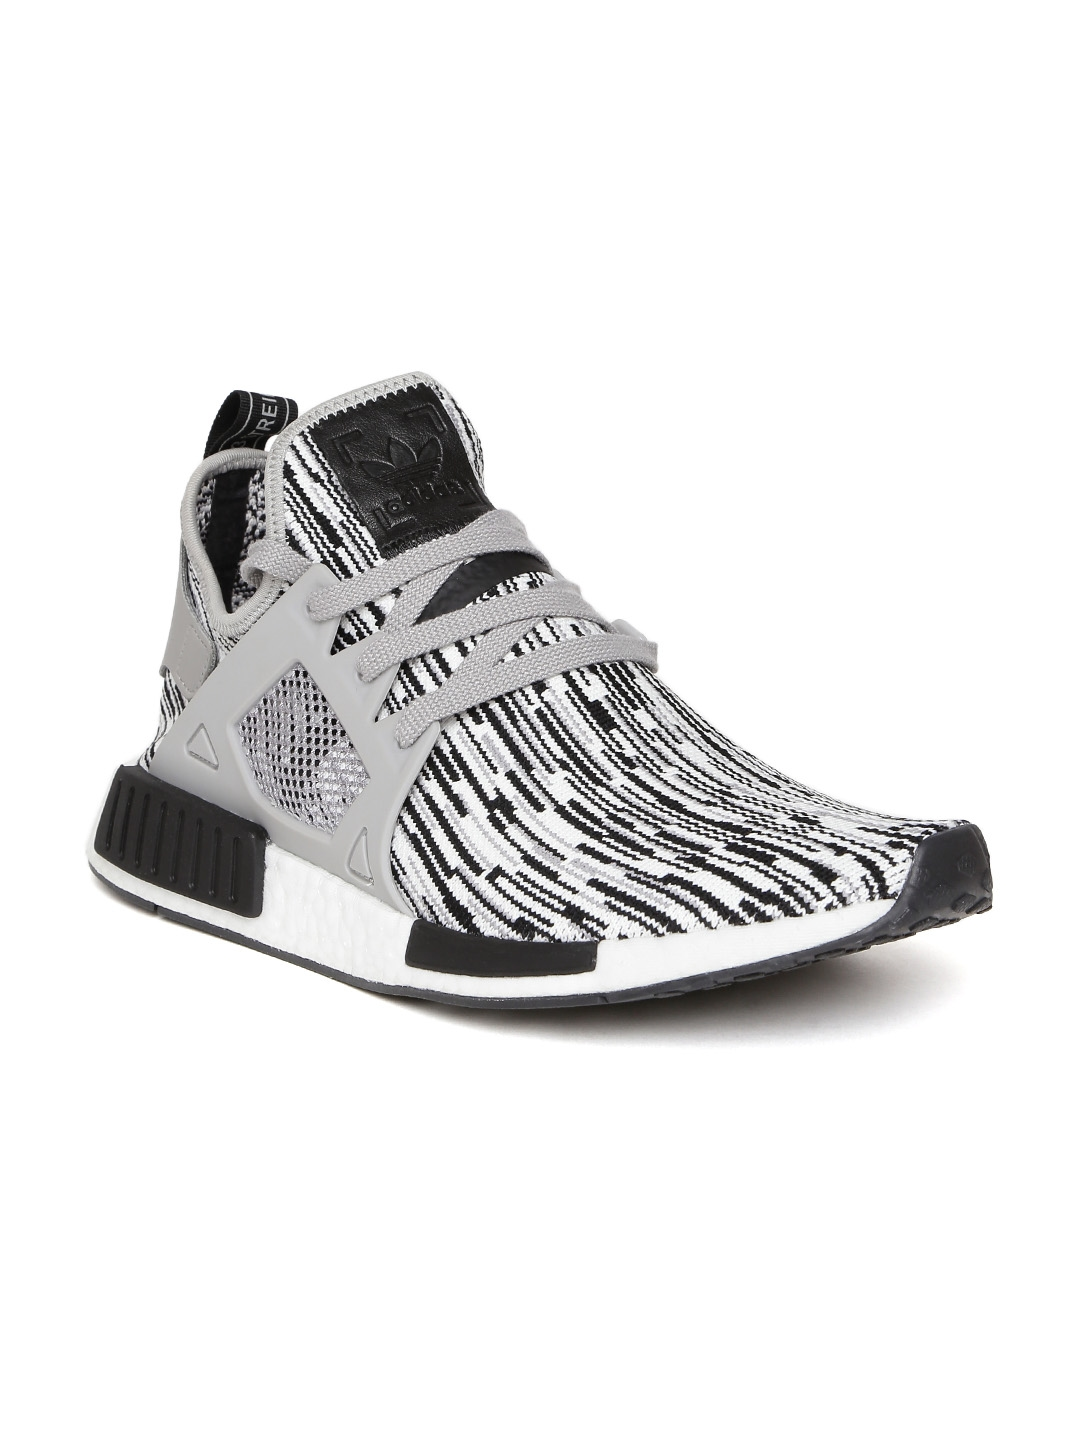 0e9e07f74 Buy ADIDAS Originals Men White   Black NMD XR1 PK Sneakers - Casual ...